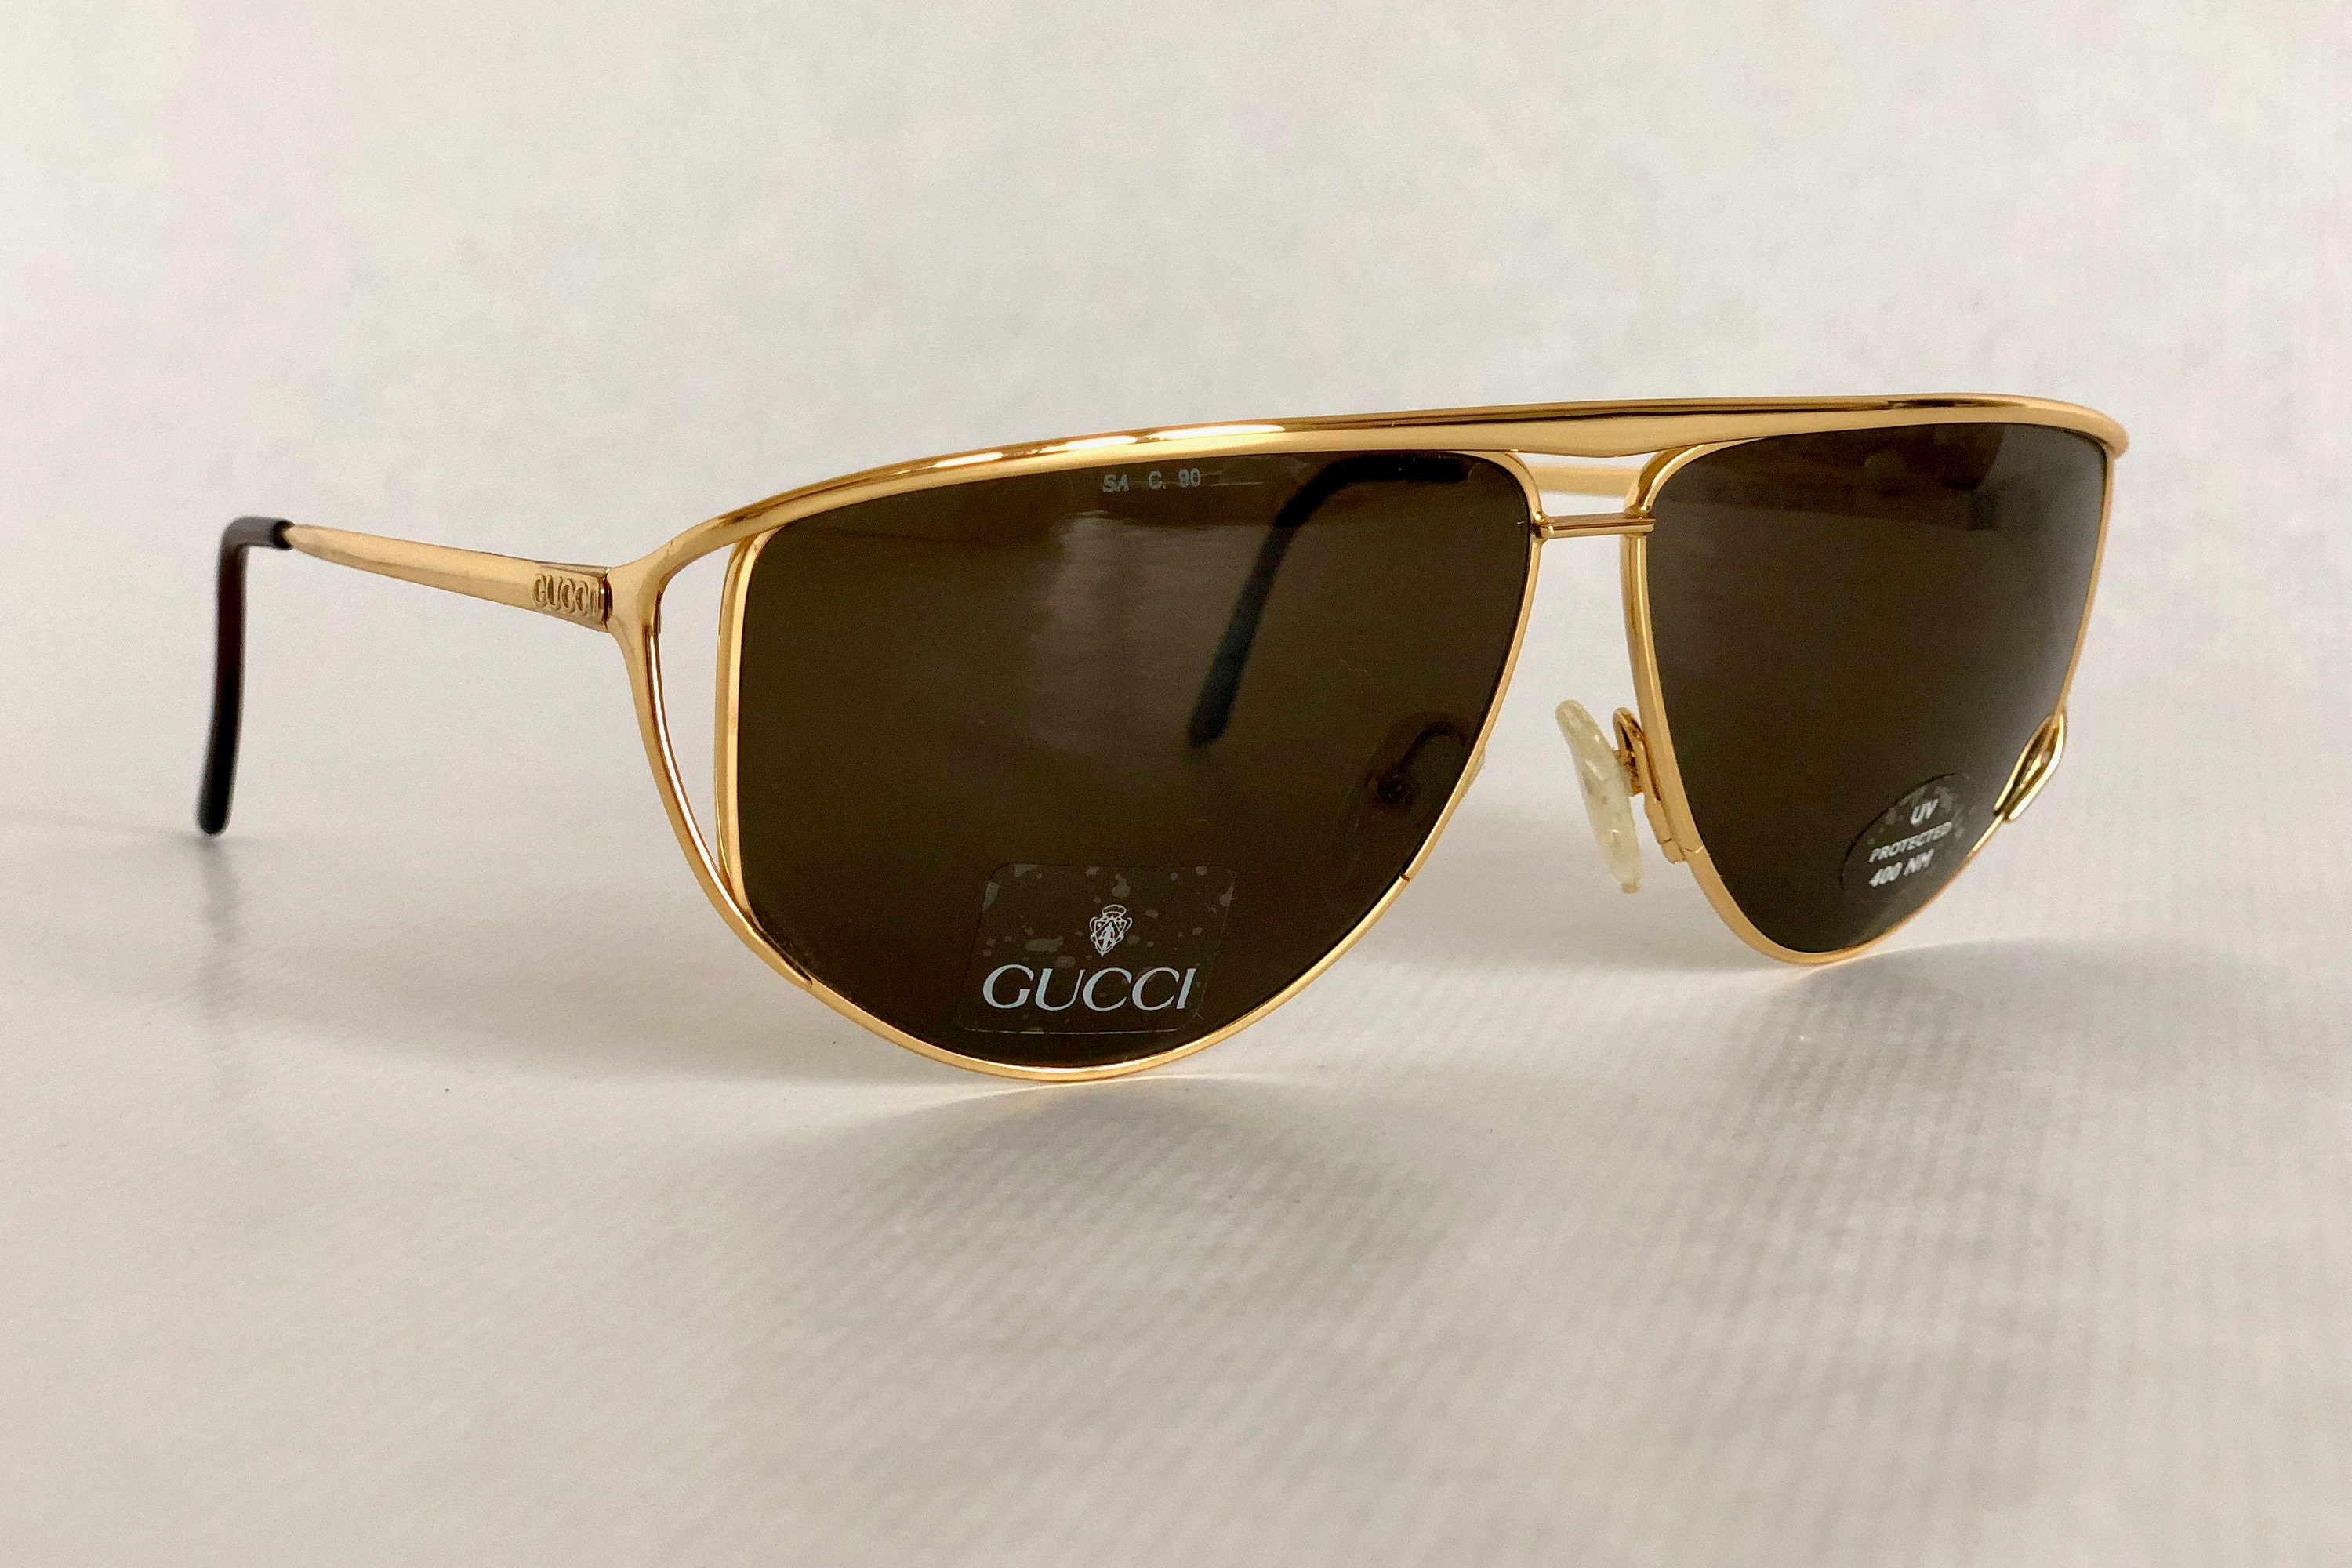 8cb71429c14 GUCCI GG 2233 S Vintage Sunglasses New Old Stock including Case. gallery  photo gallery photo ...